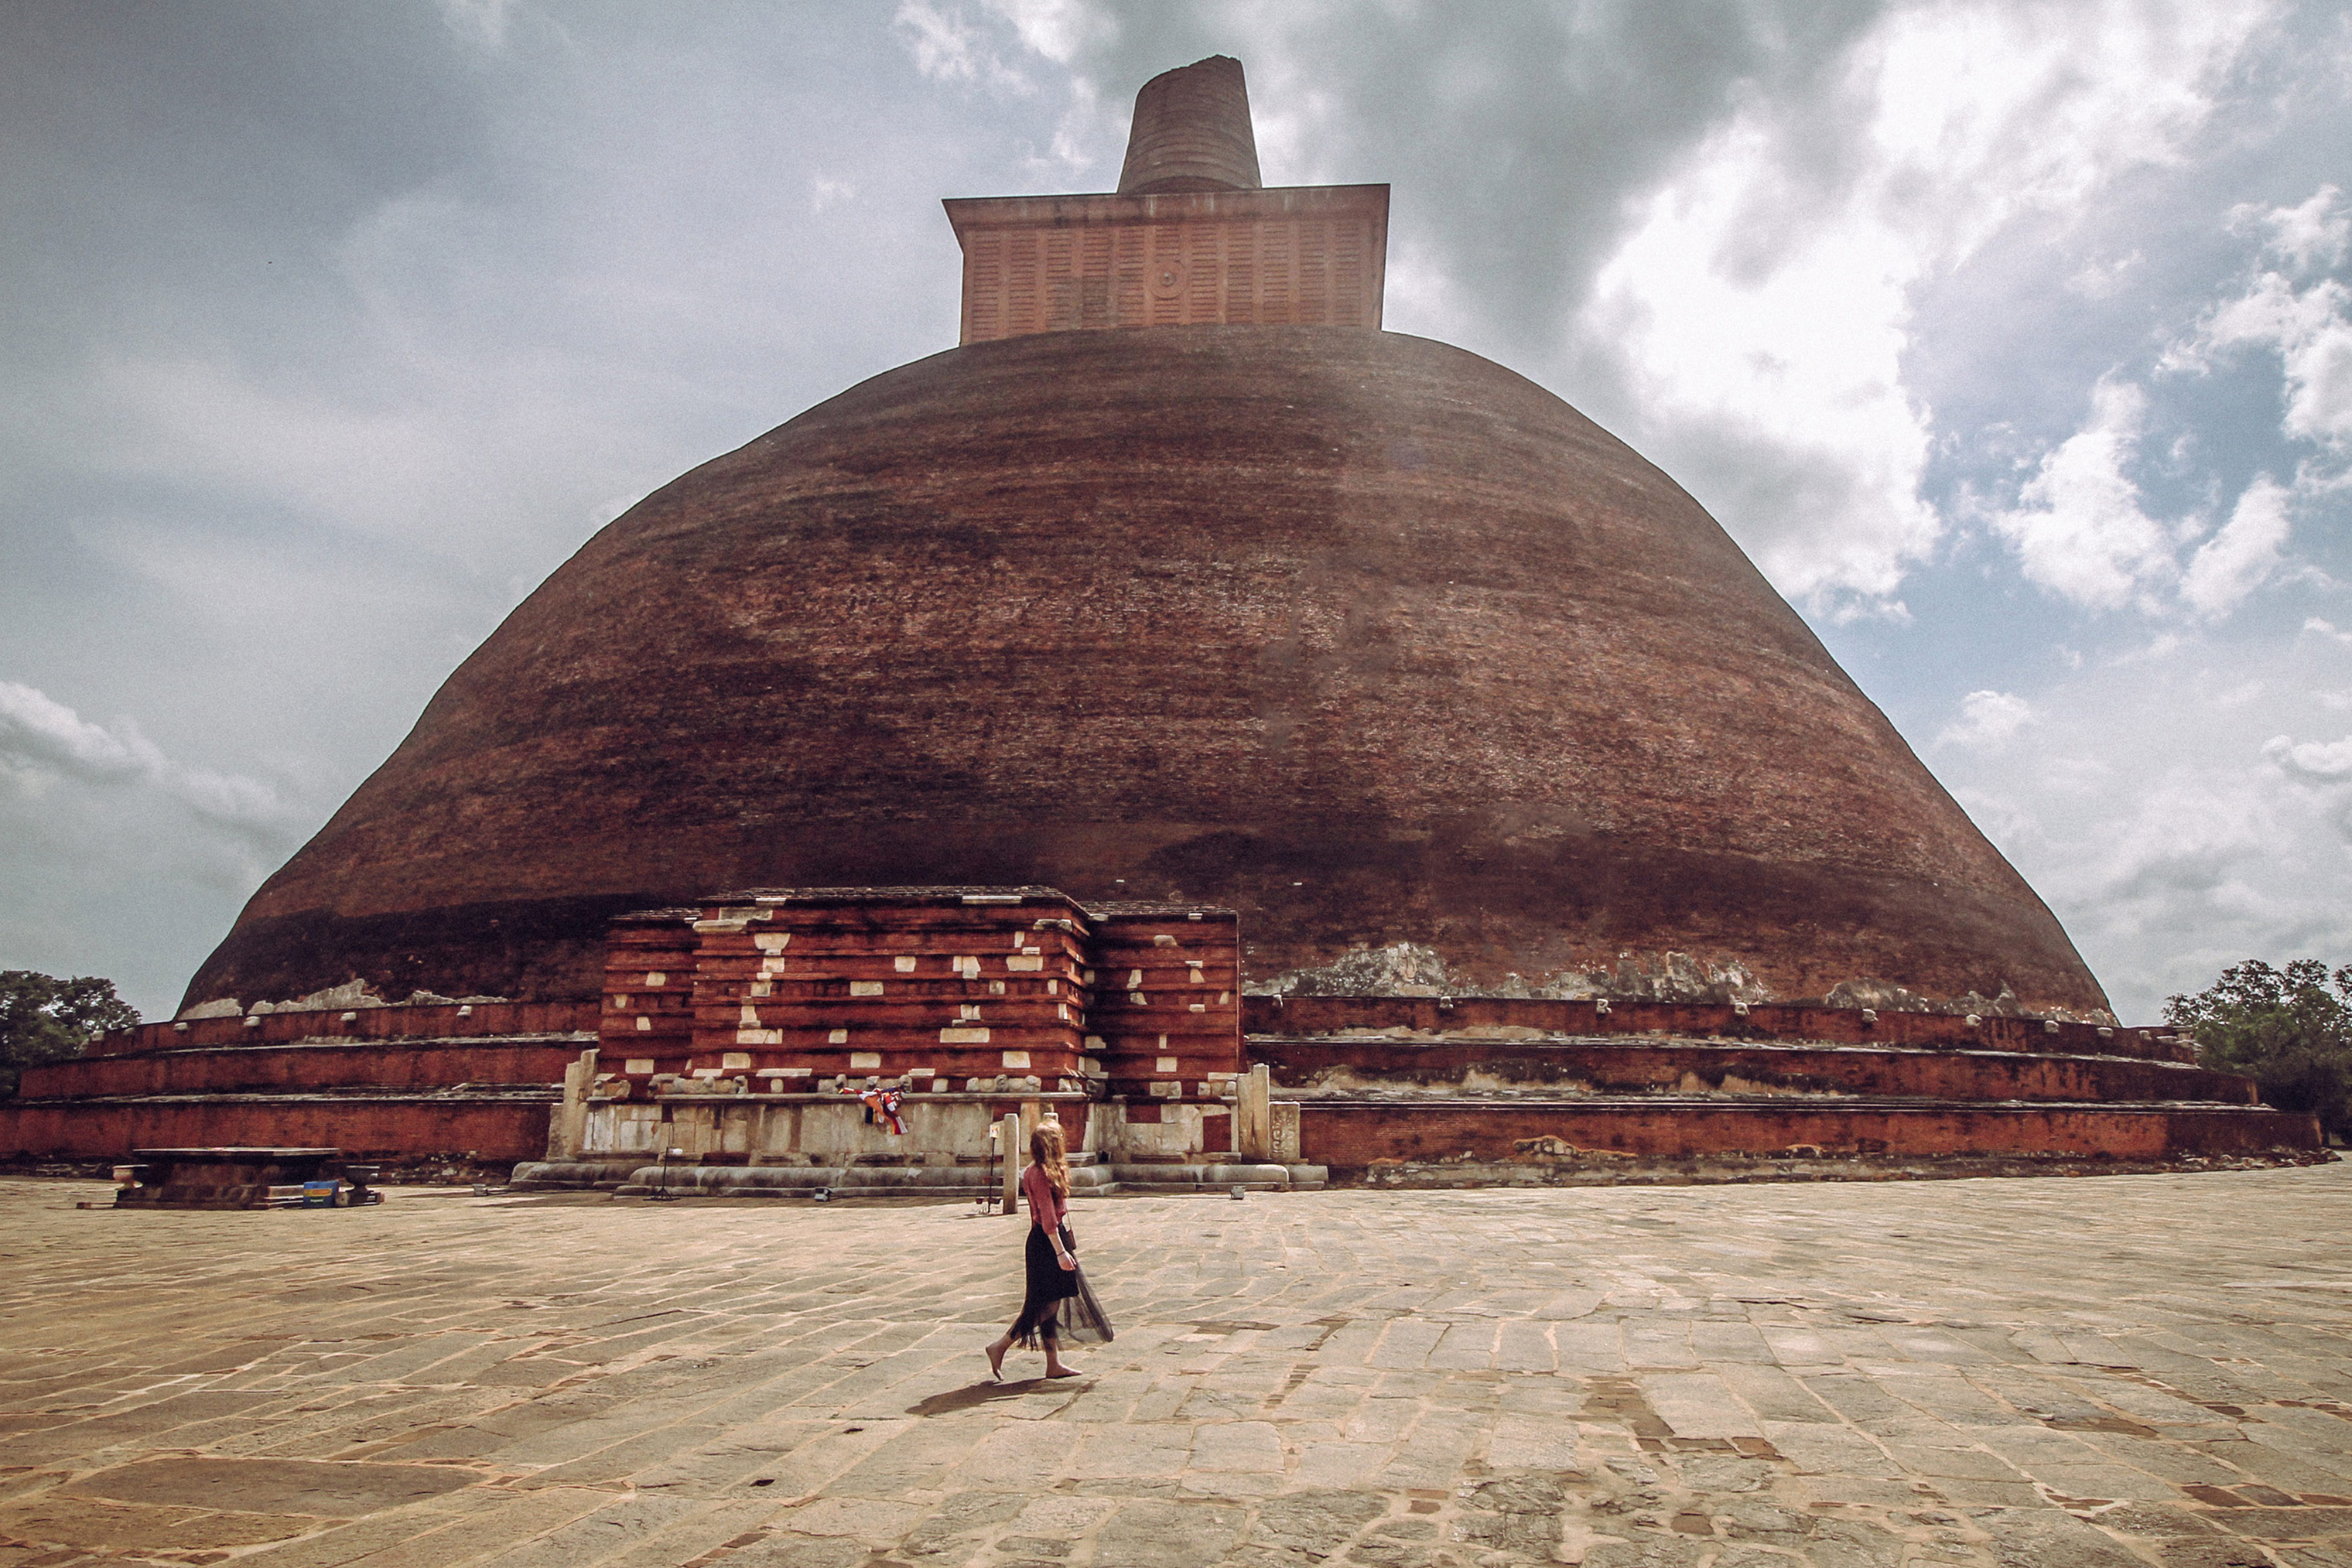 Rose Trafford walks the circumference of the Anuradhapura monastery in Sri Lanka.